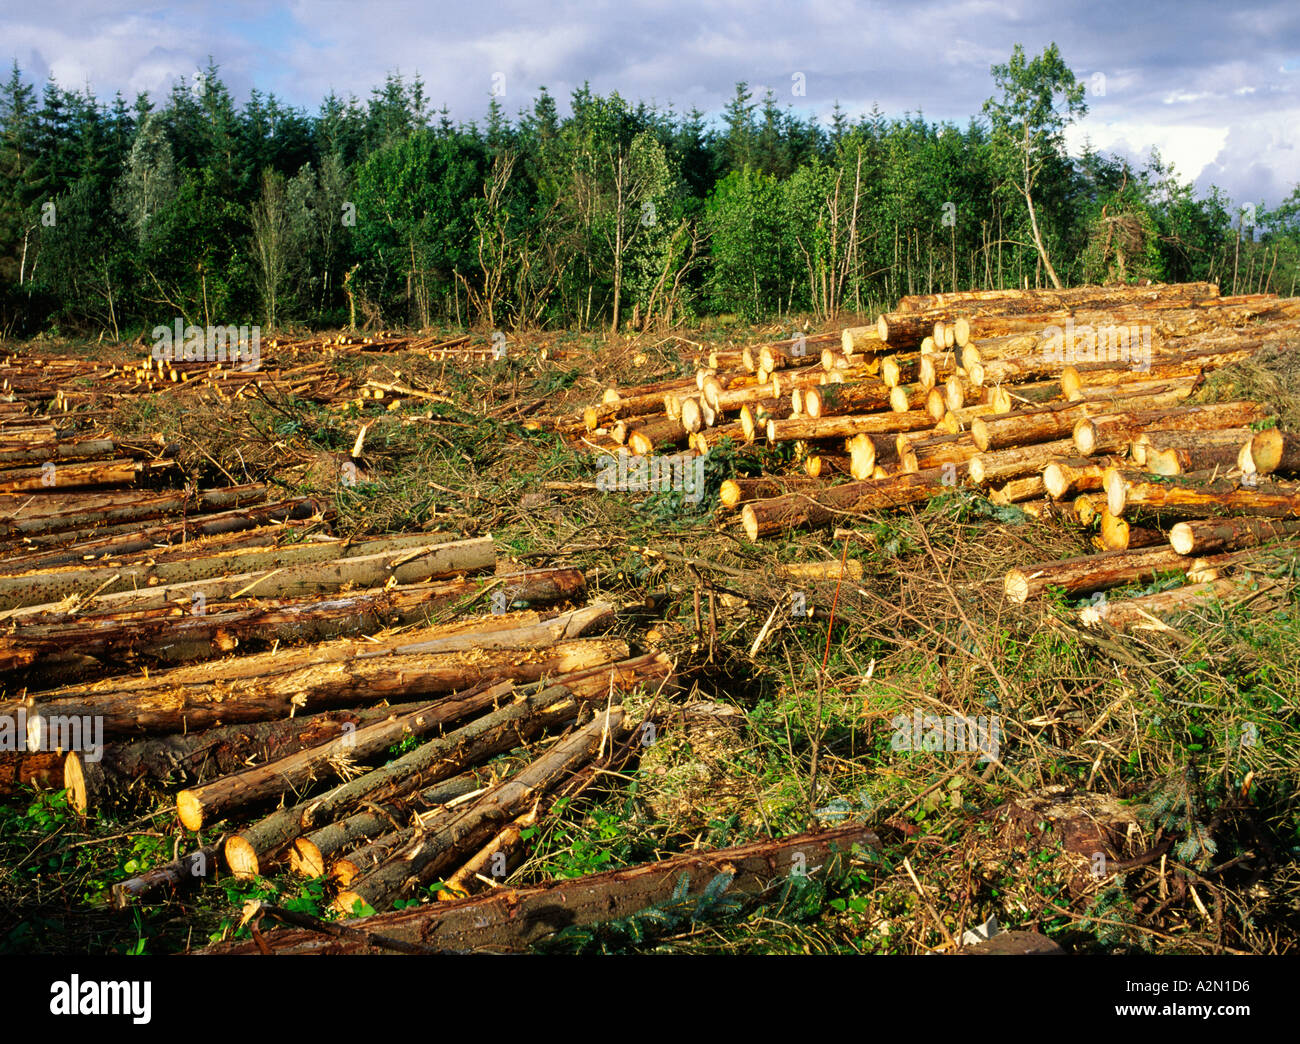 Cutting young softwood industrial conifer logging forestry timber logs in County Sligo, Ireland - Stock Image